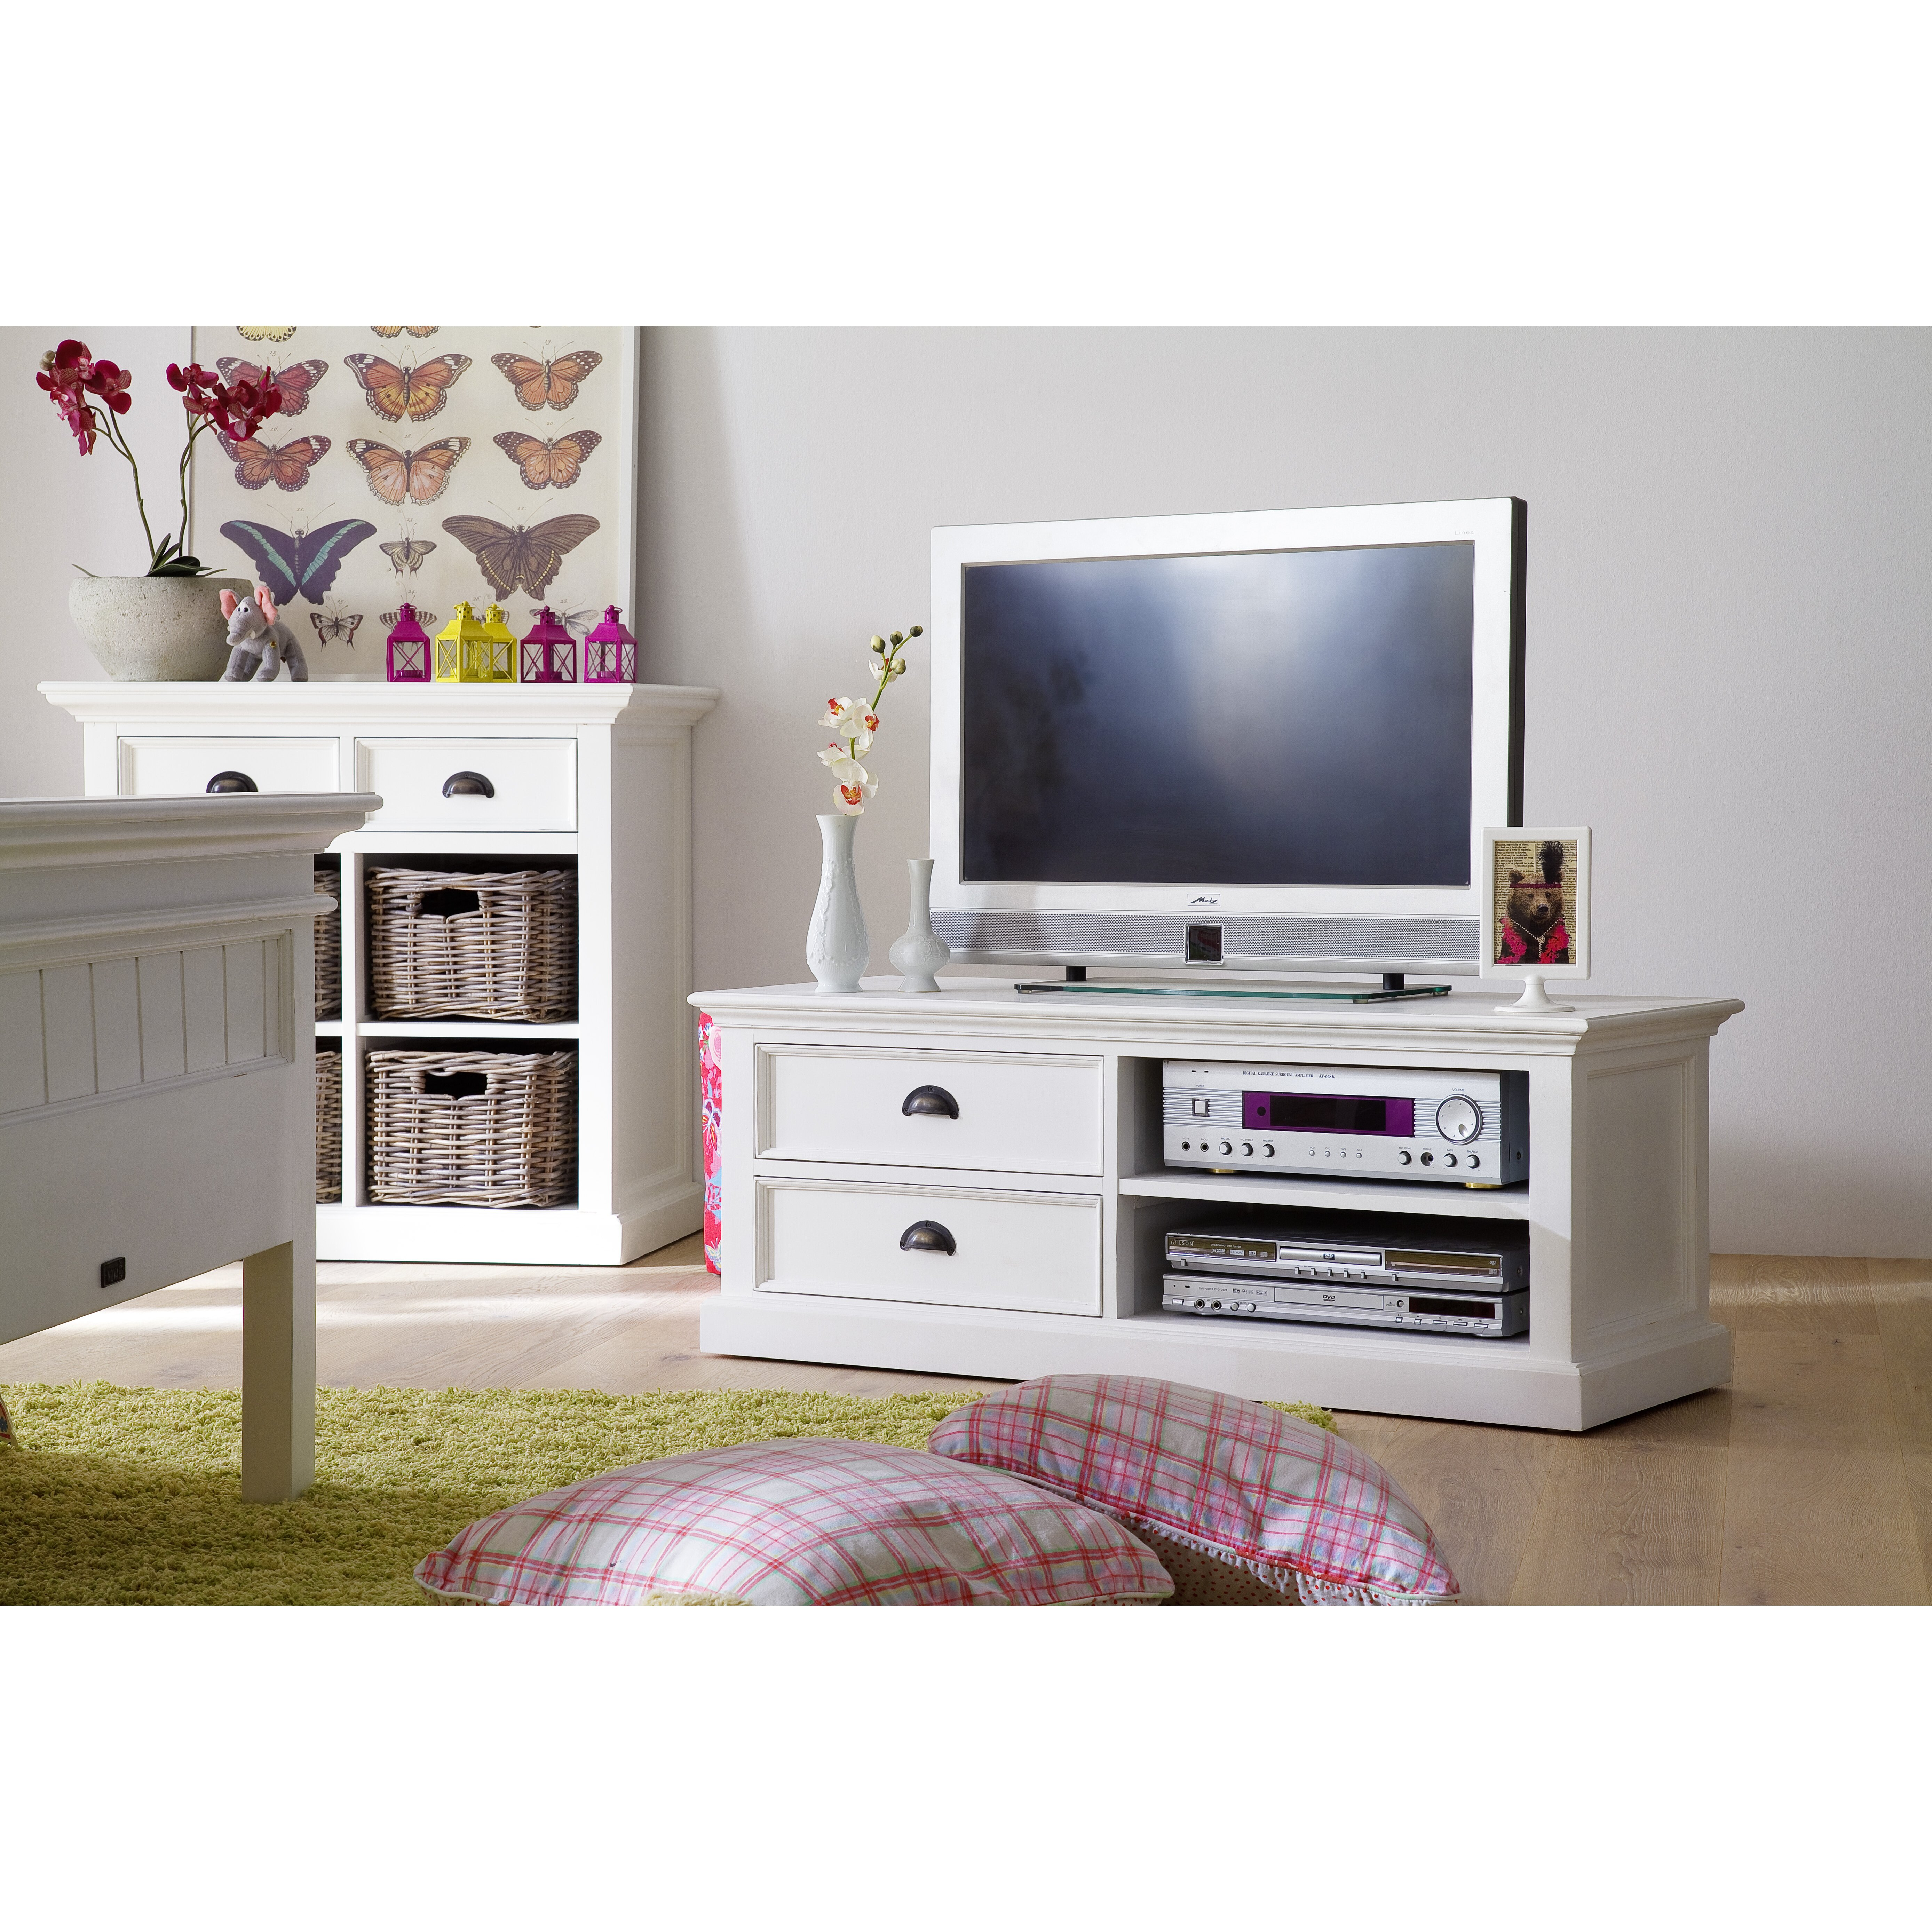 Breakwater bay belle isle tv stand for tvs up to 42 - Meubles bois blanc ...